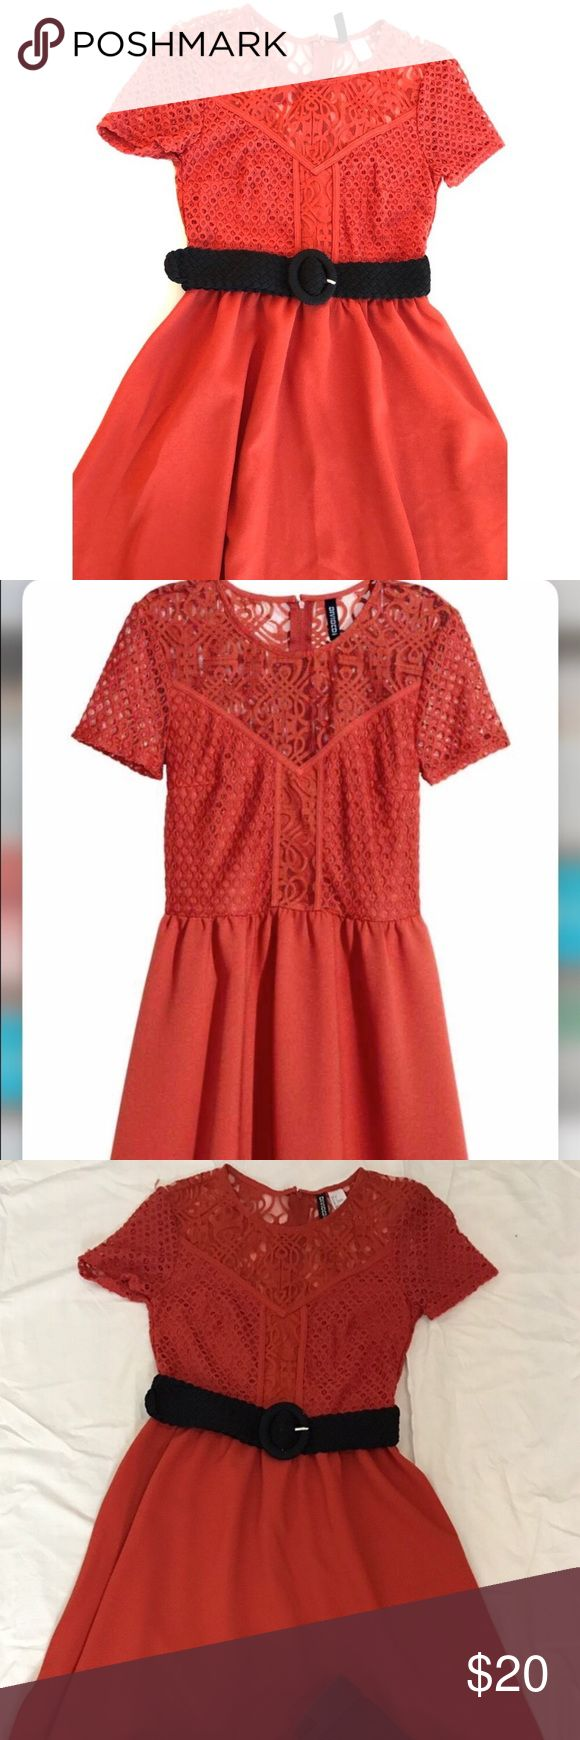 H&M orange lace dress Super cute rustic orange sundress. Lace style fitted top and flowy skirt. Zips up the back and a perfect dress for a dark waist belt. Divided Dresses